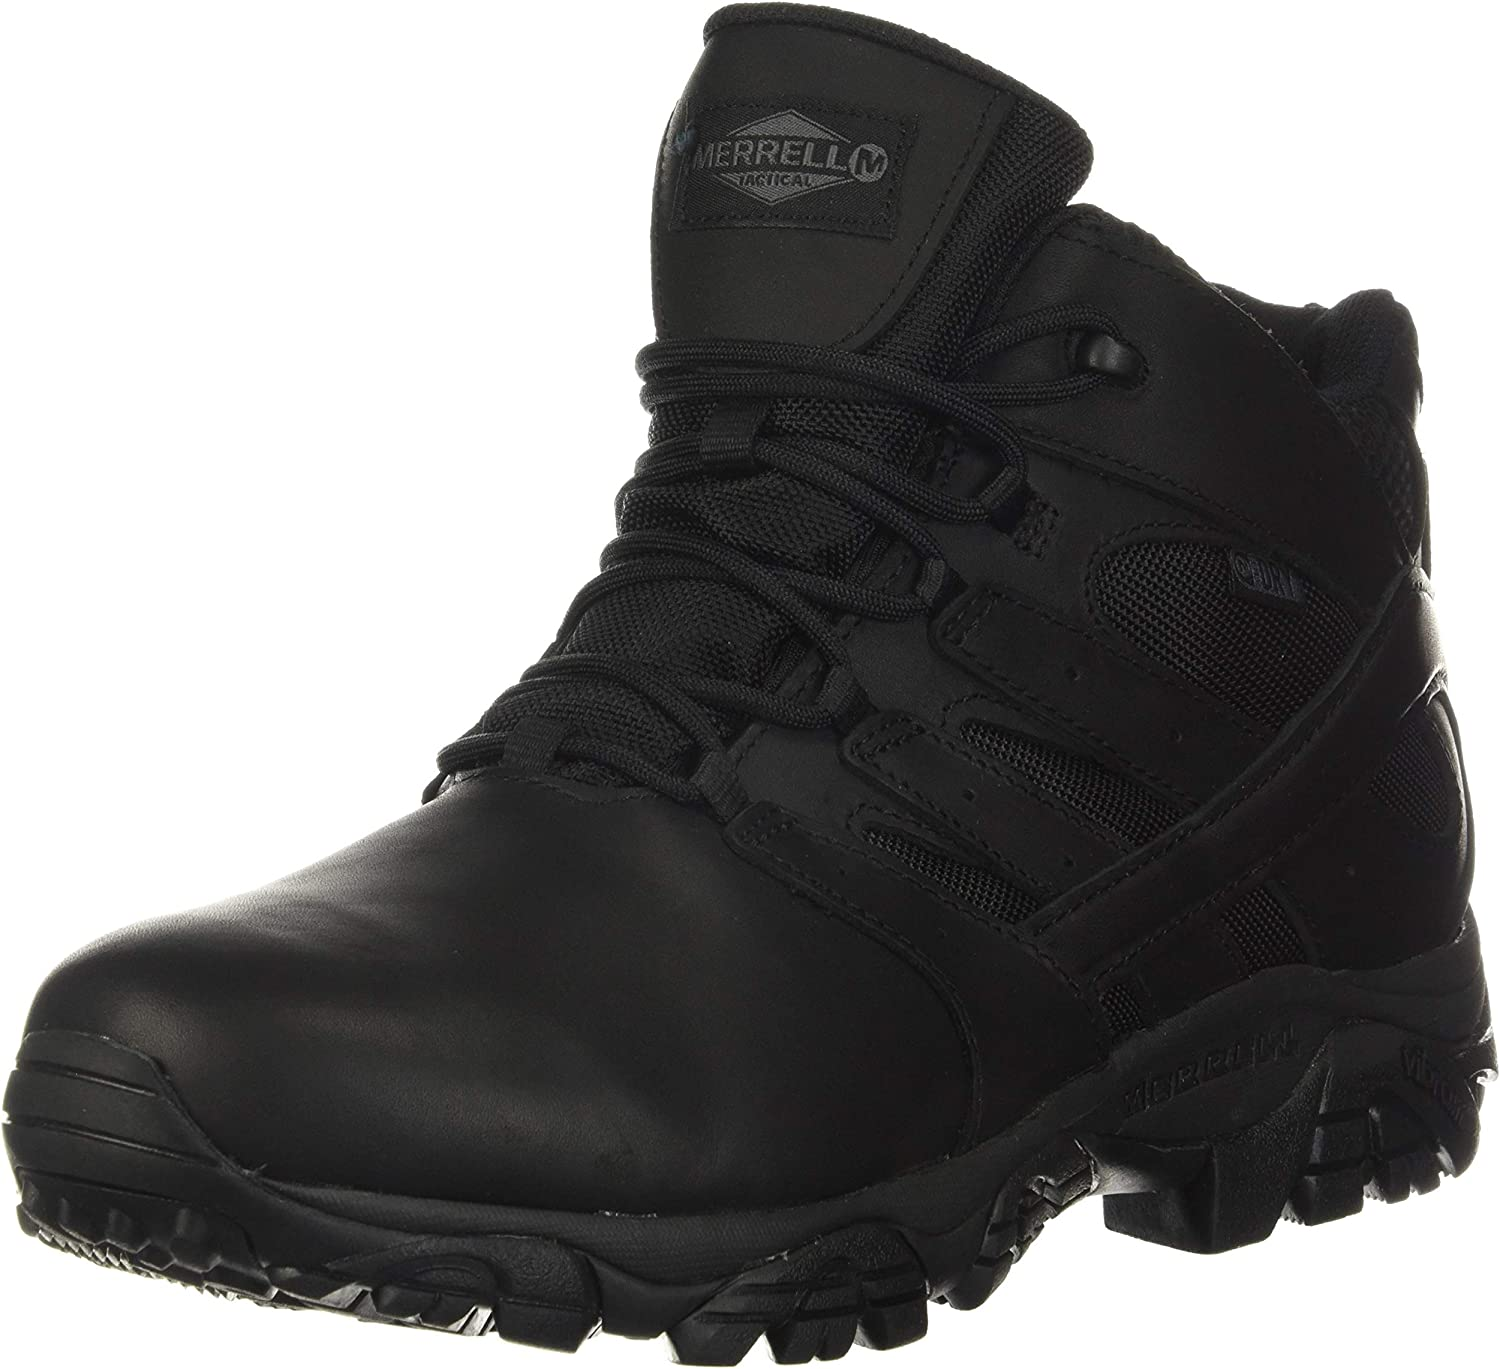 Recommended Merrell Work Men's Moab Sale SALE% OFF 2 Response Tactical Mid Waterproof